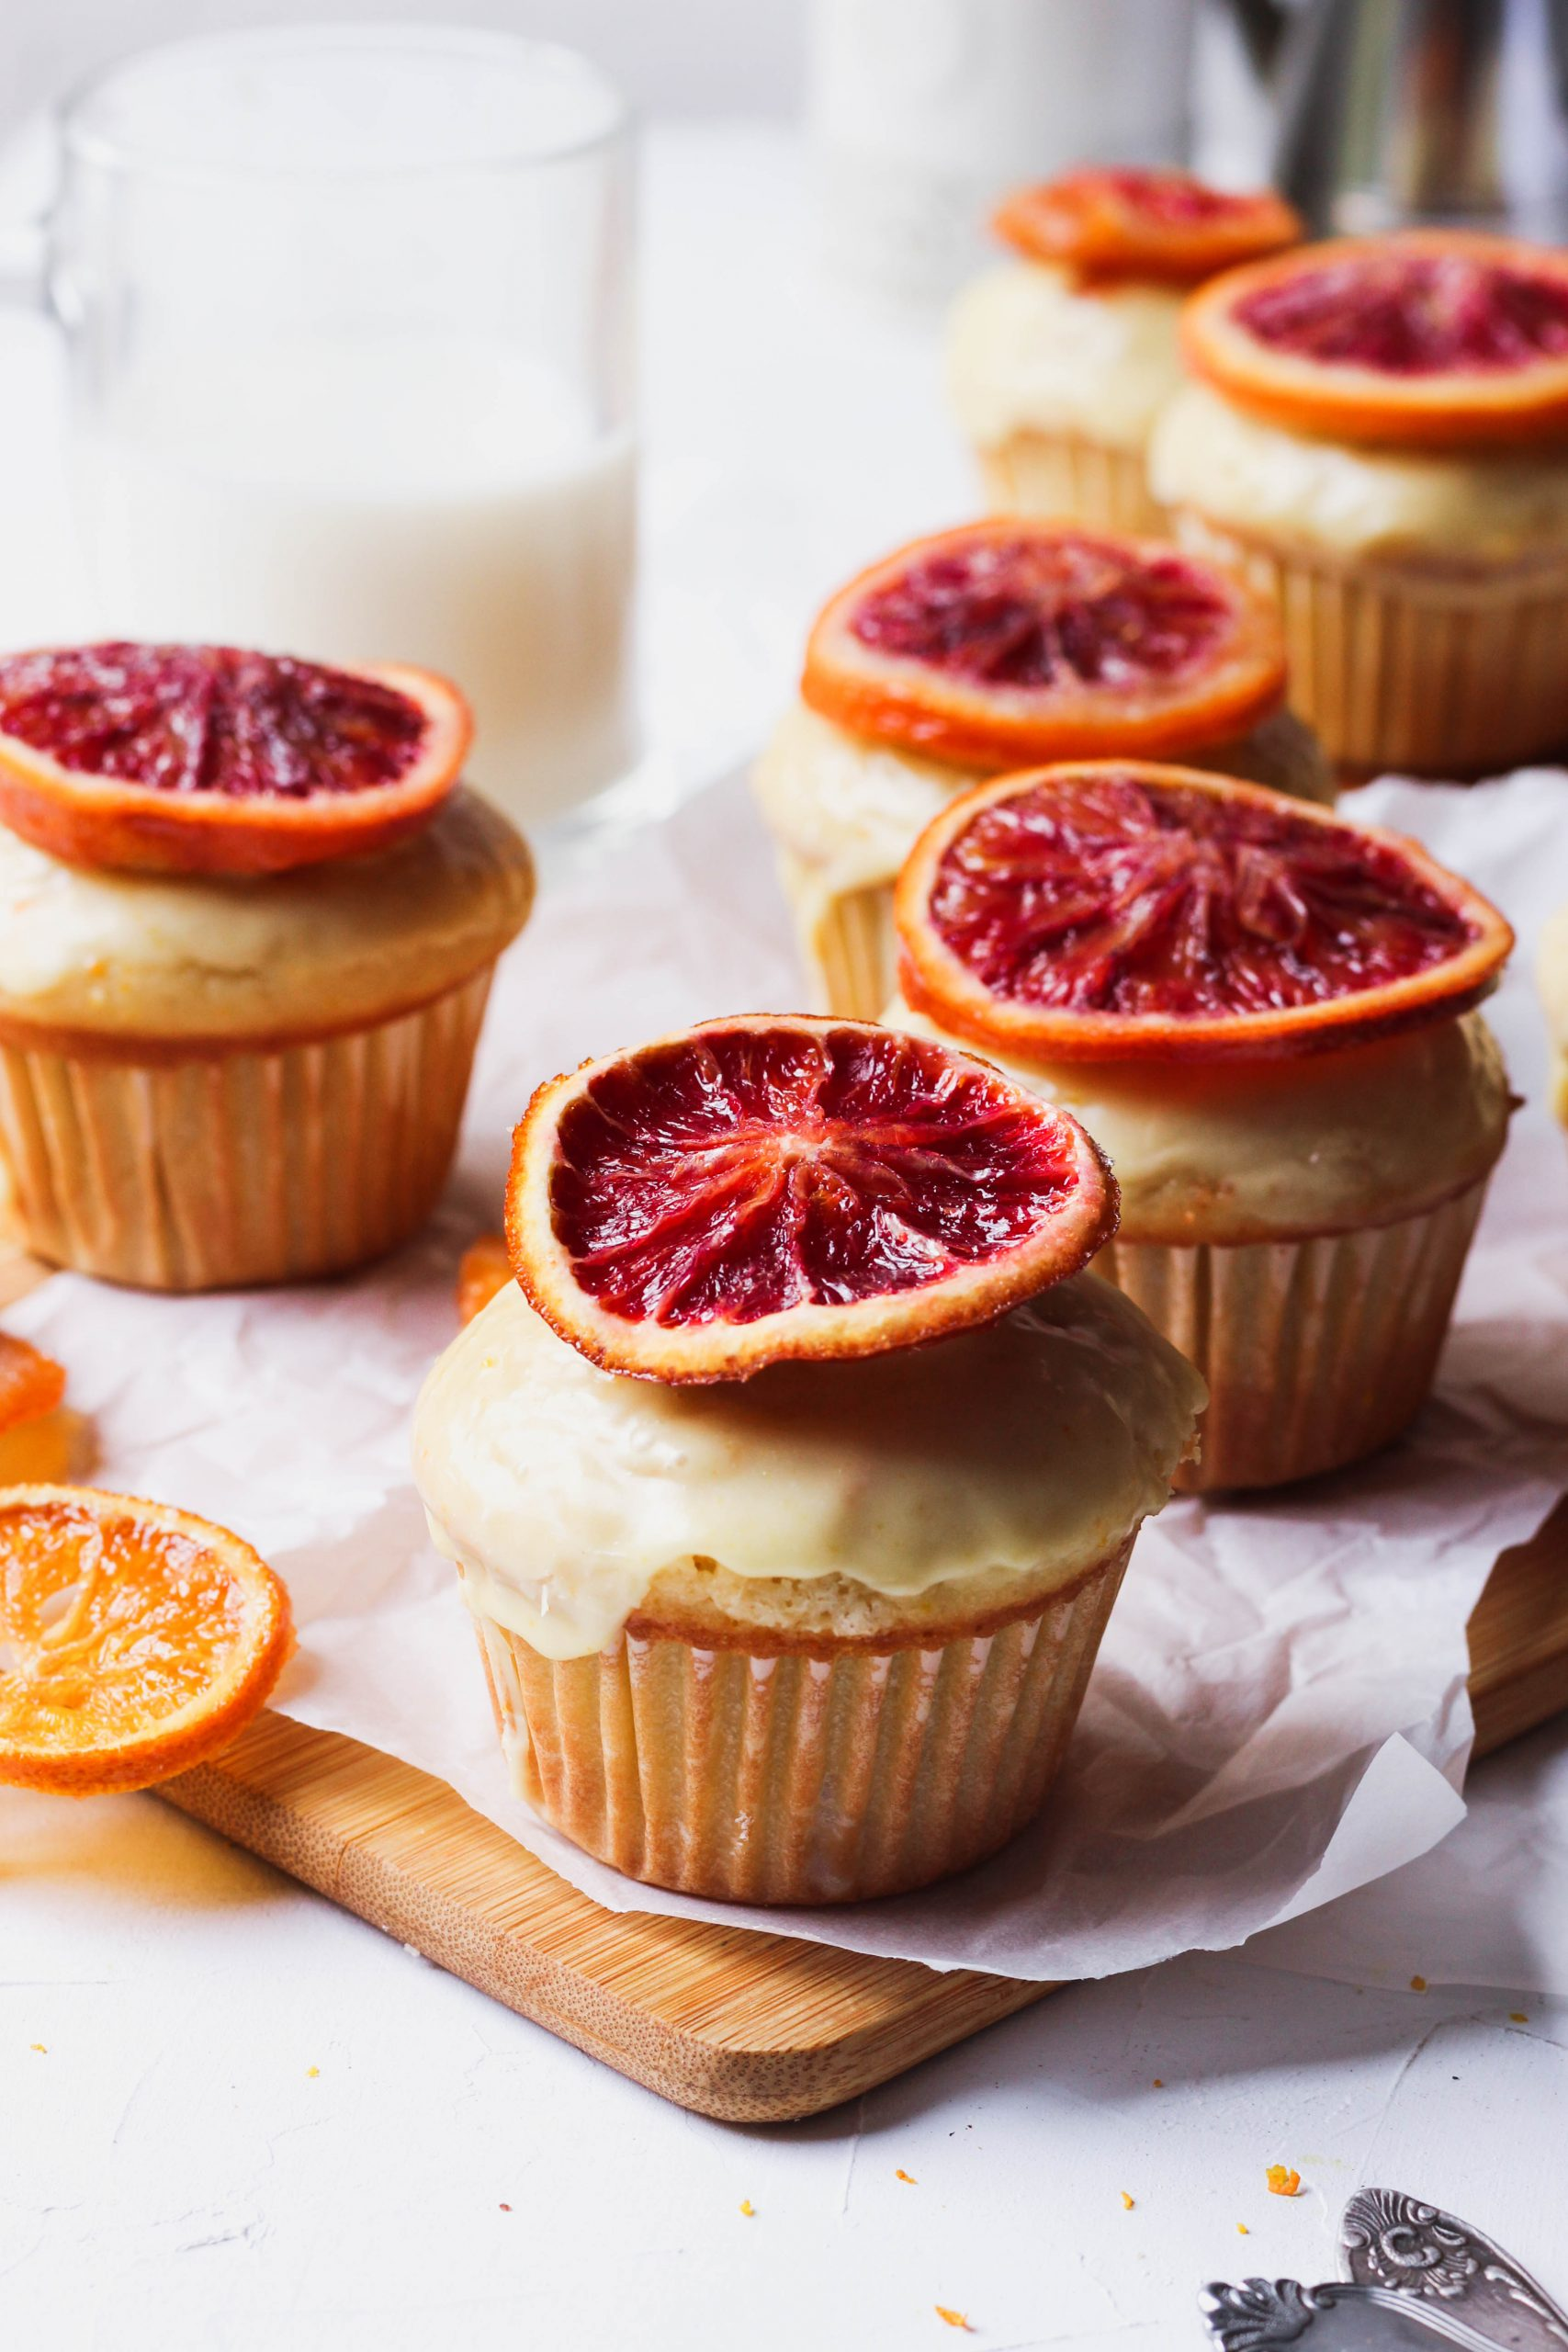 Fluffy orange muffins with a fruity orange glaze and topped with candied blood oranges